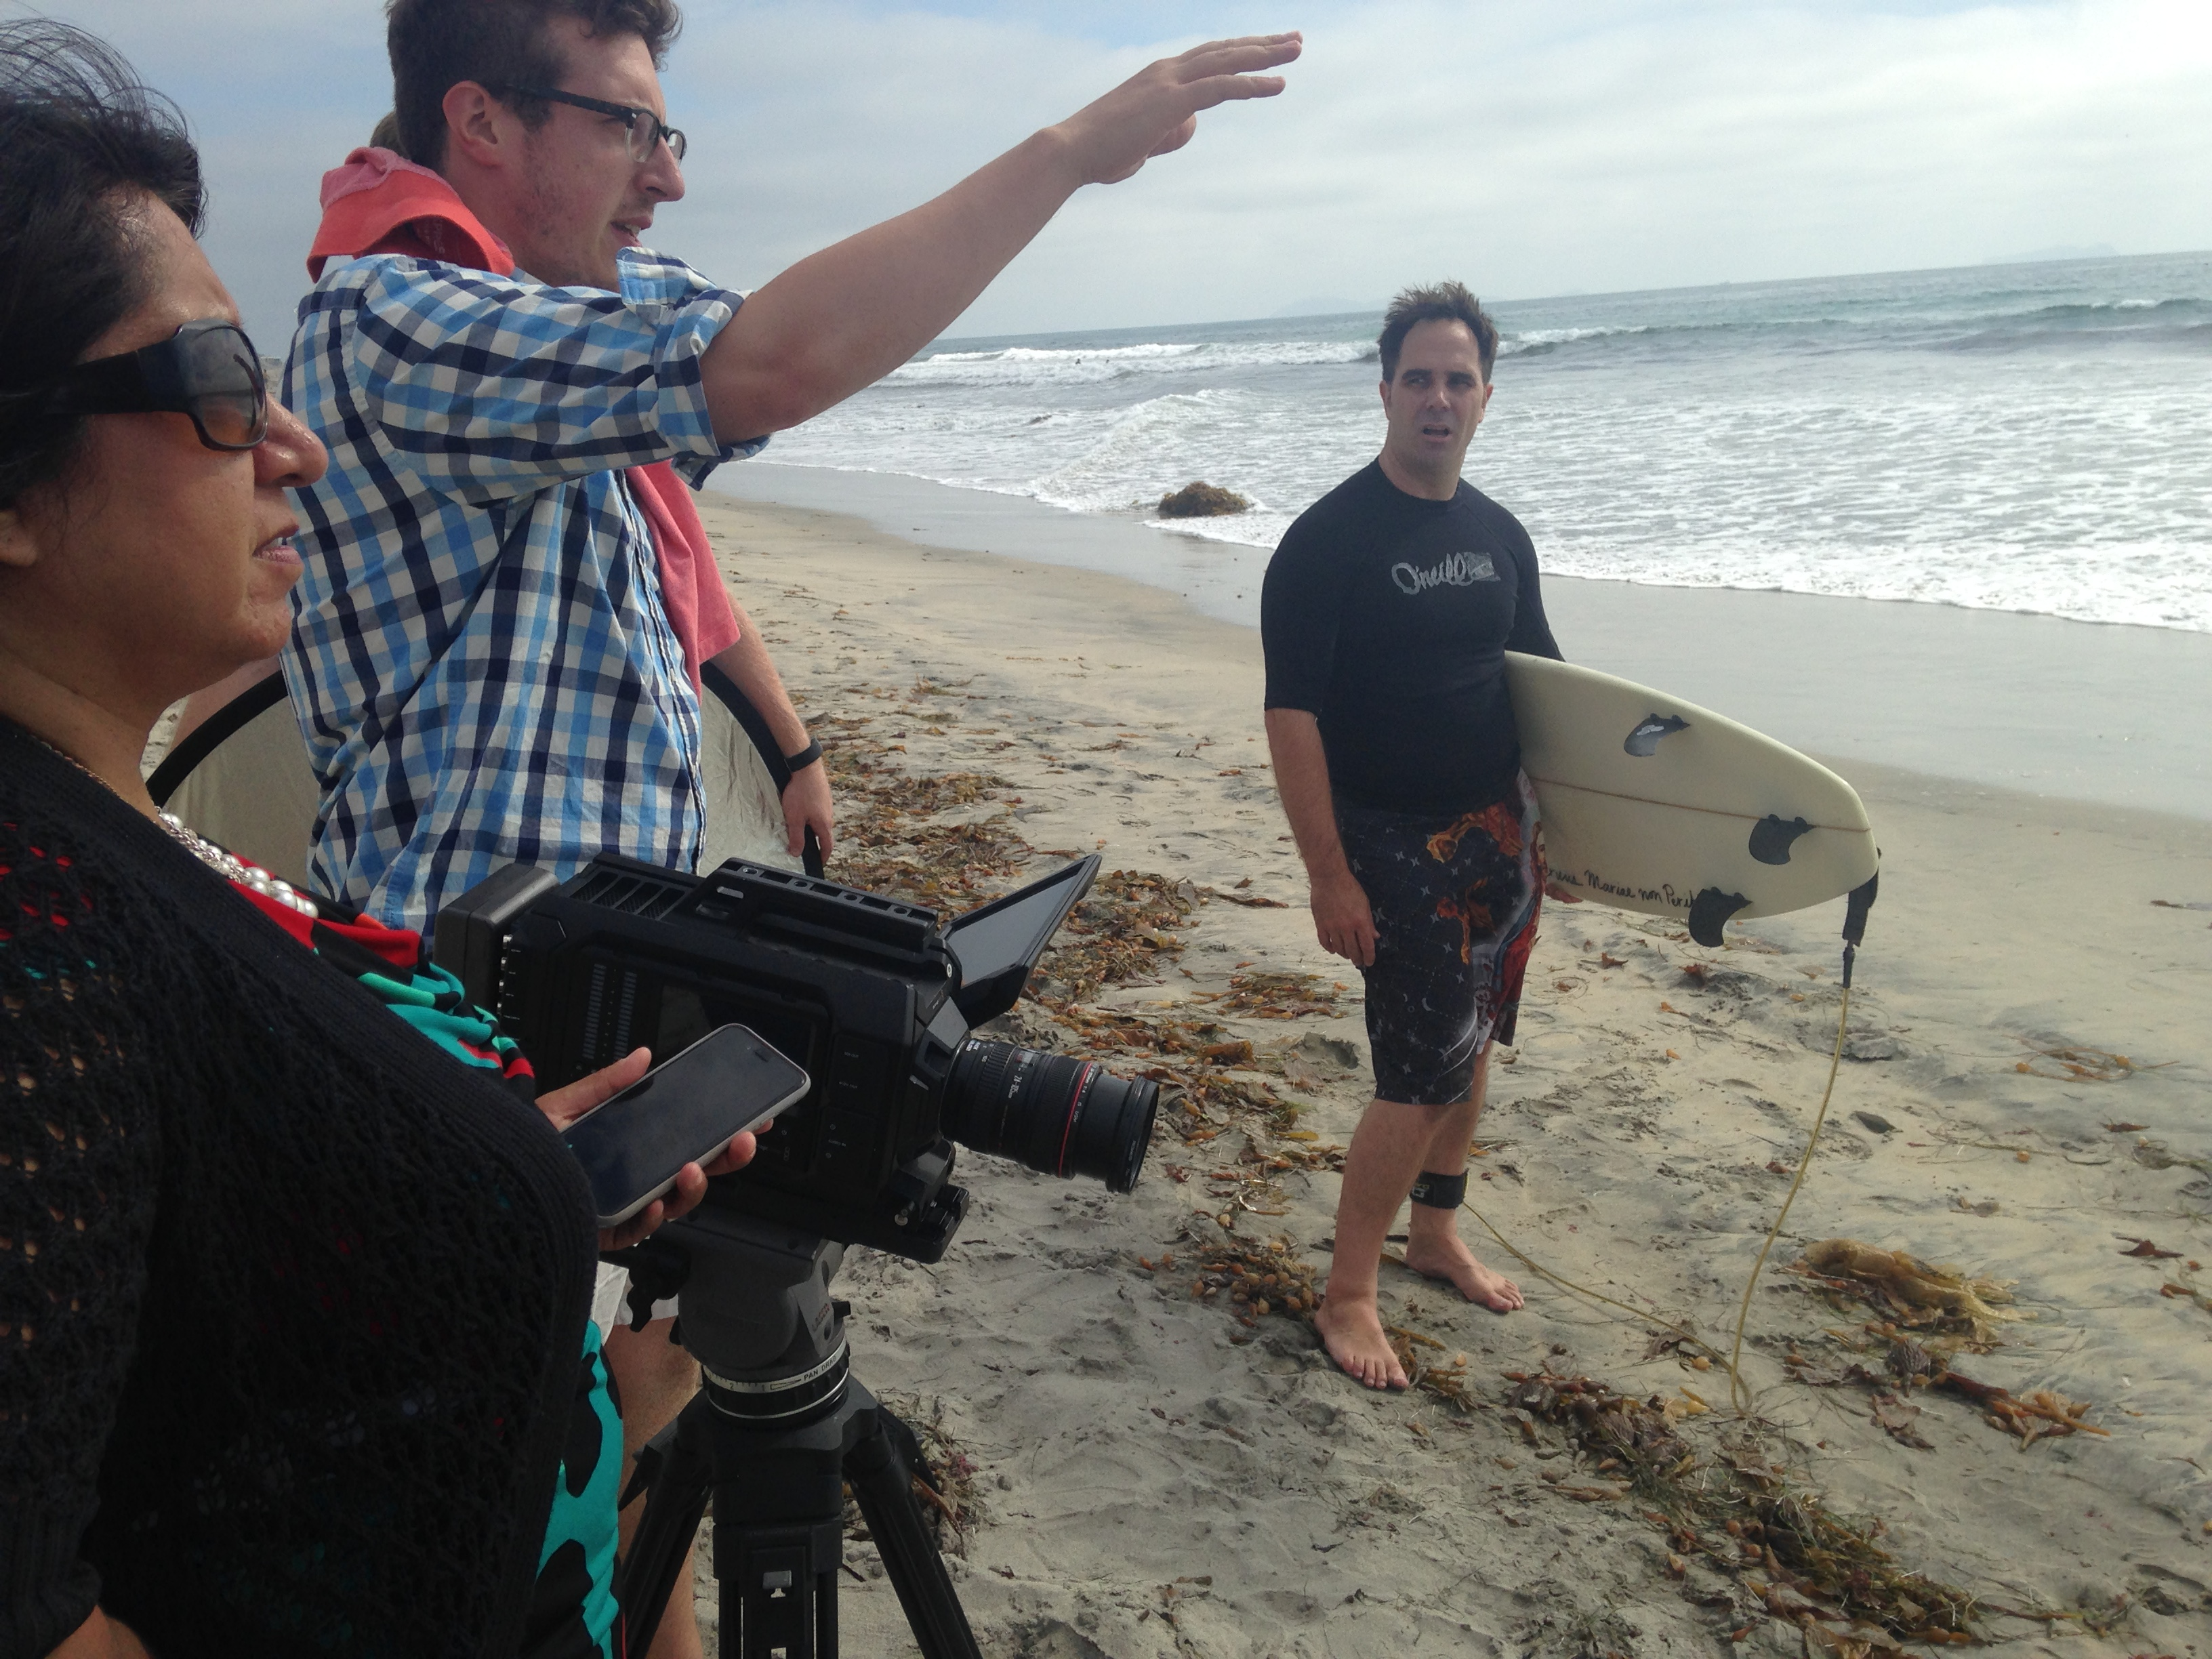 Above, Ryan is directing in California a scene from our feature length documentary Power in My Hands. He seems to be trying to calm the waves with his outstretched hand before we shoot.